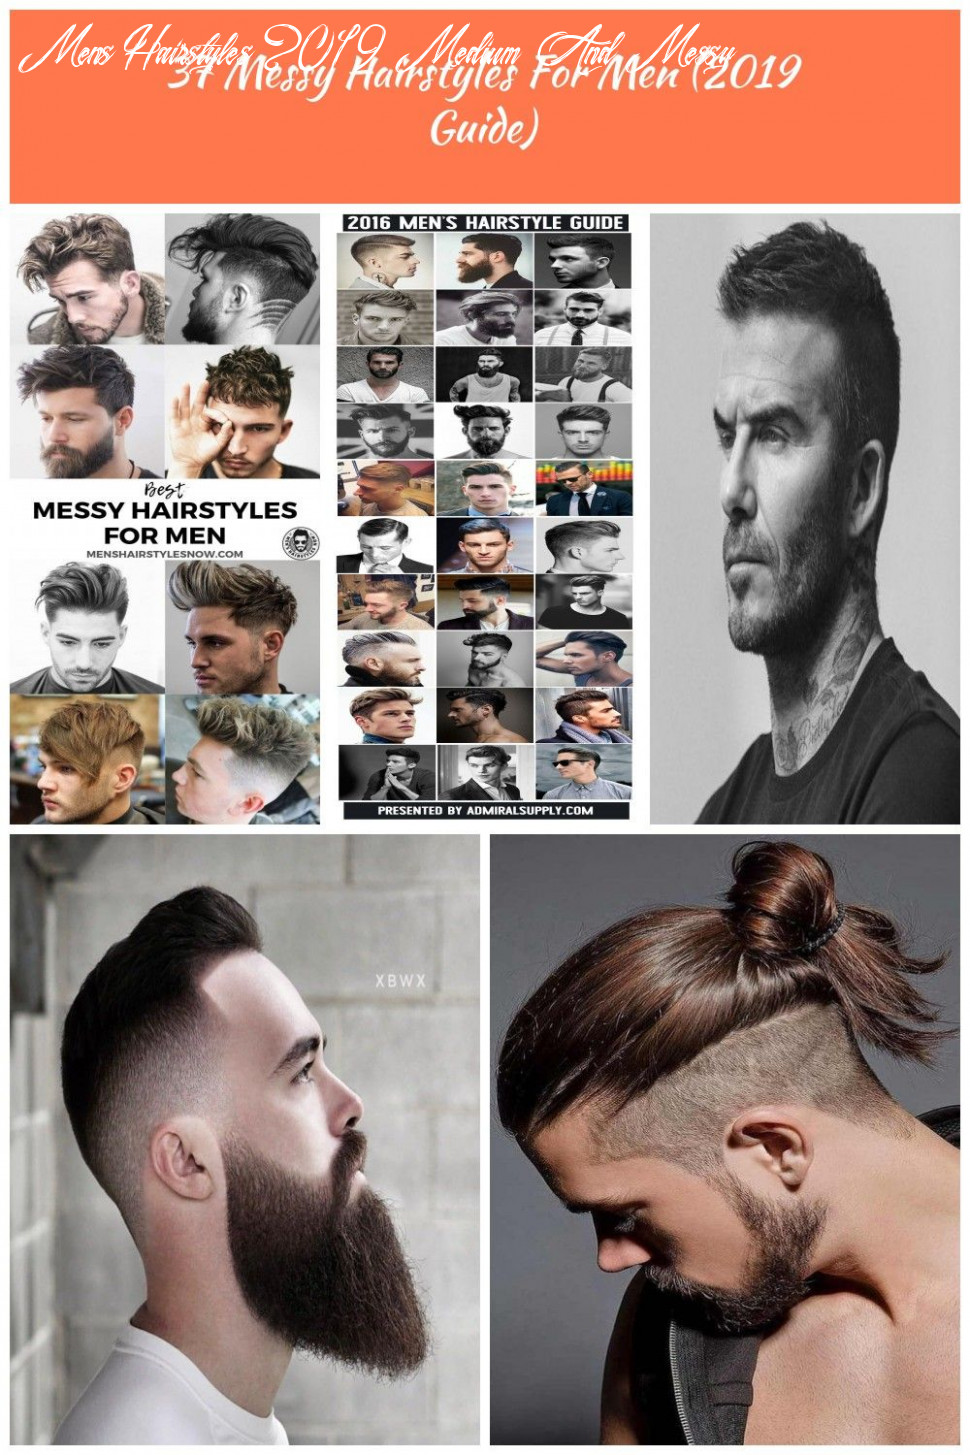 Best Messy Hairstyles For Men: Cool Men's Short, Medium and Long ...